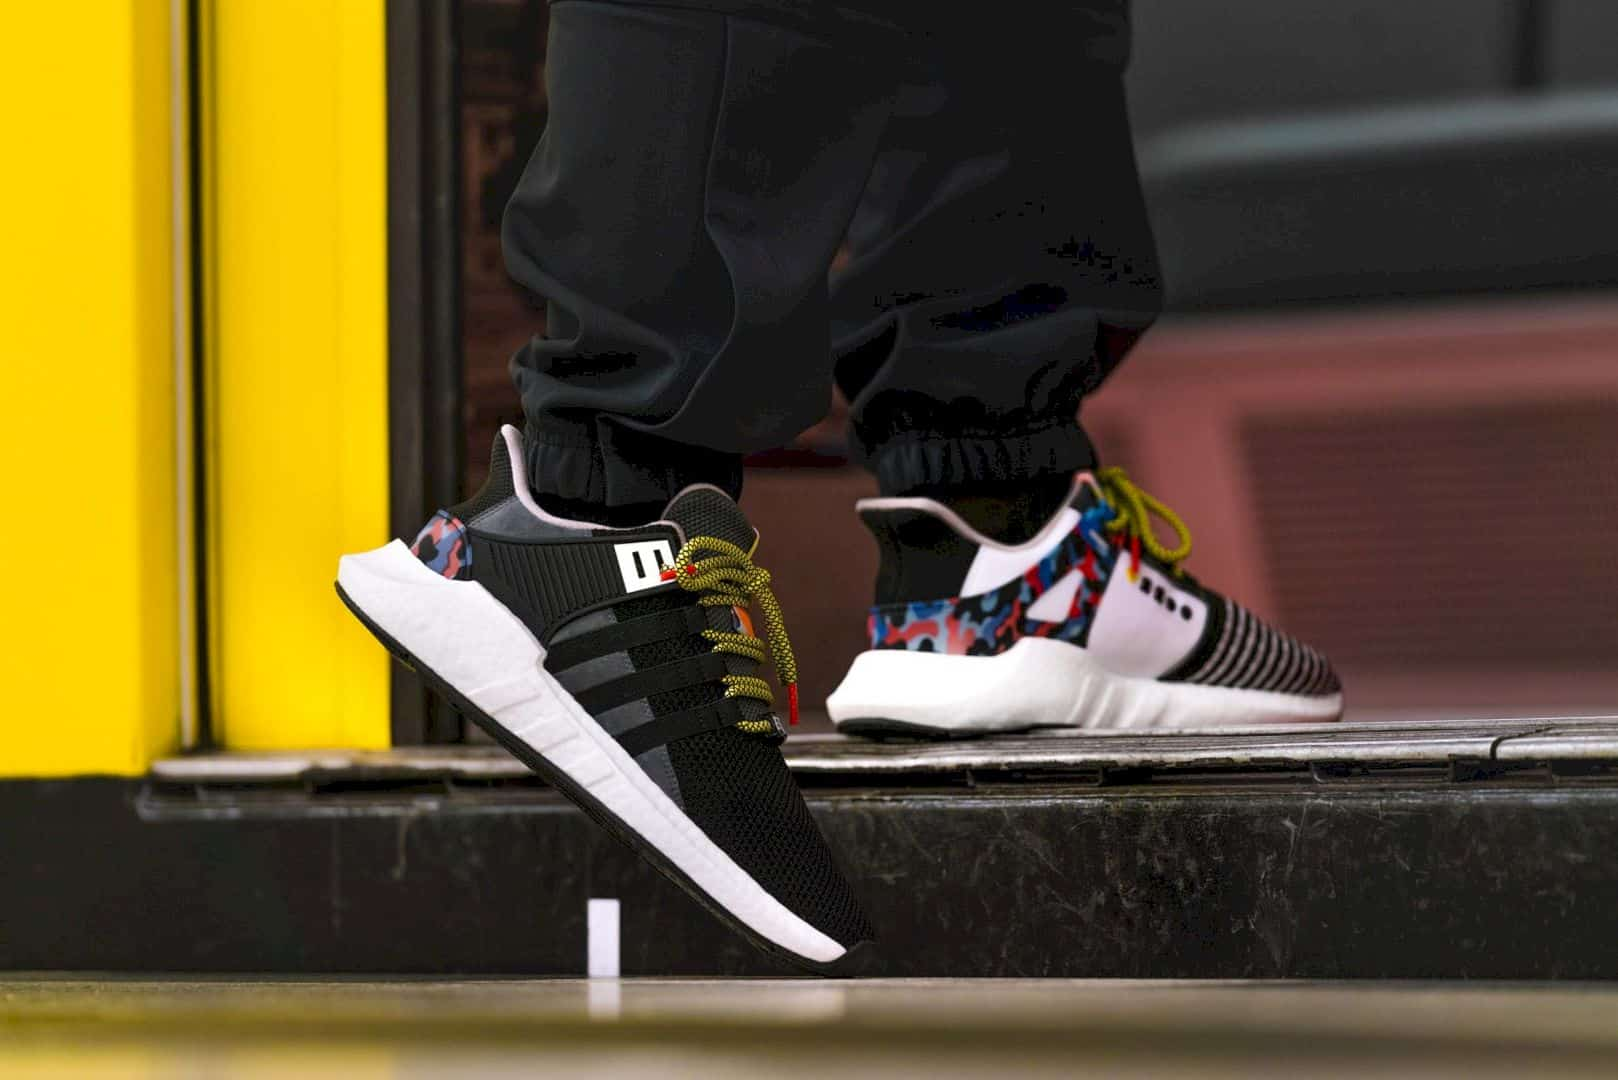 ADIDAS THE EQT SUPPORT ADV 3